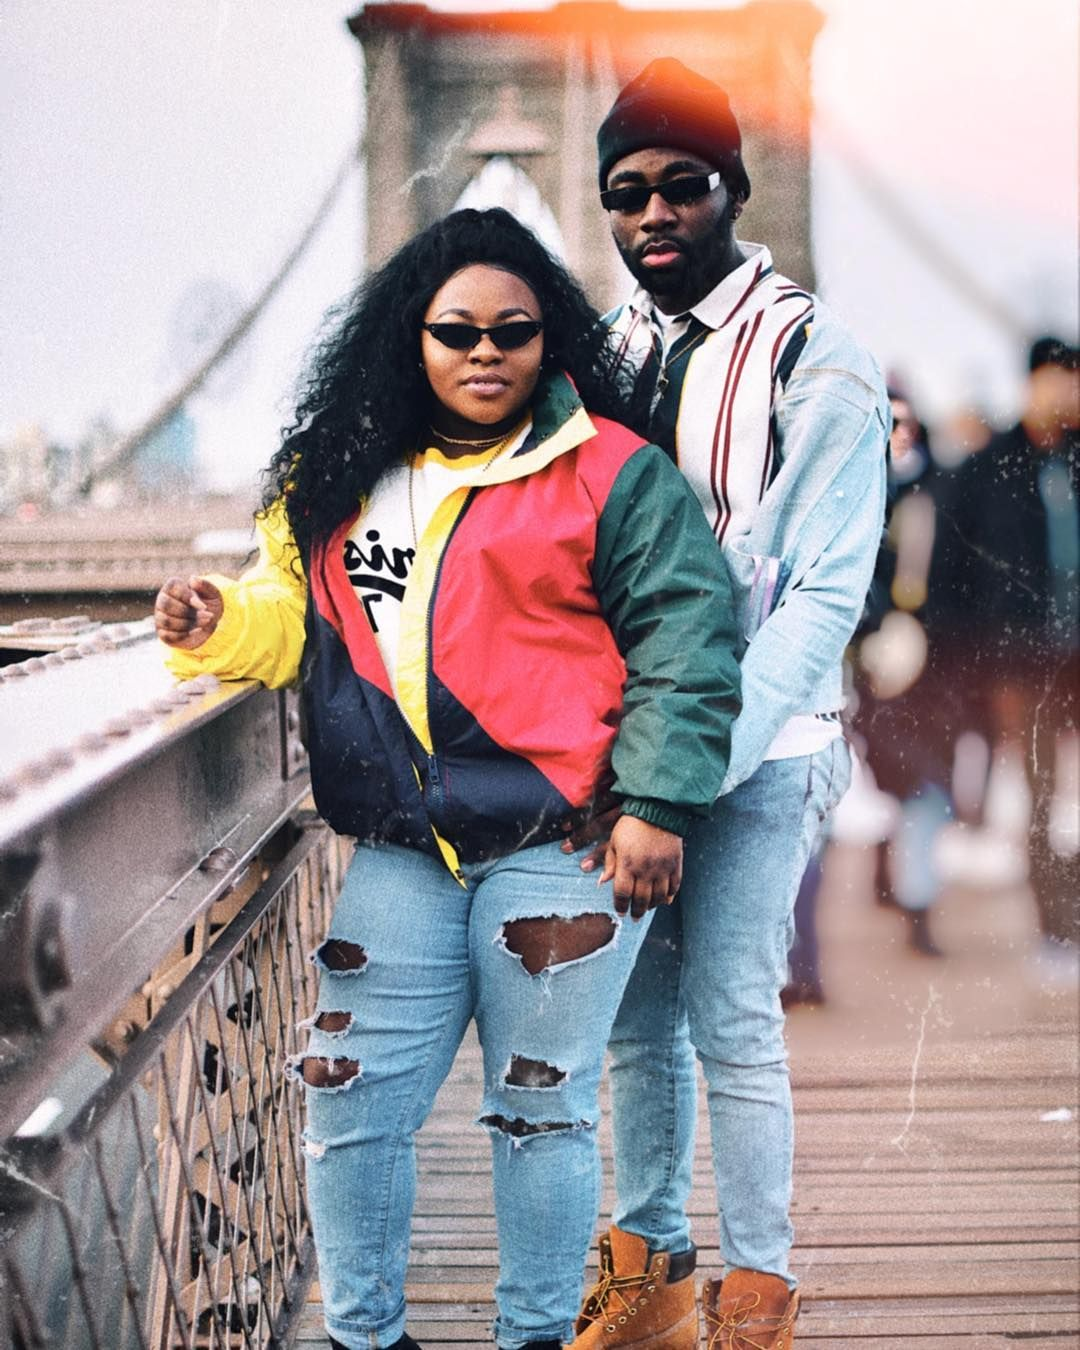 Ly Dia Vic Tor Ia On Instagram Vibes Cute Black Couples Big